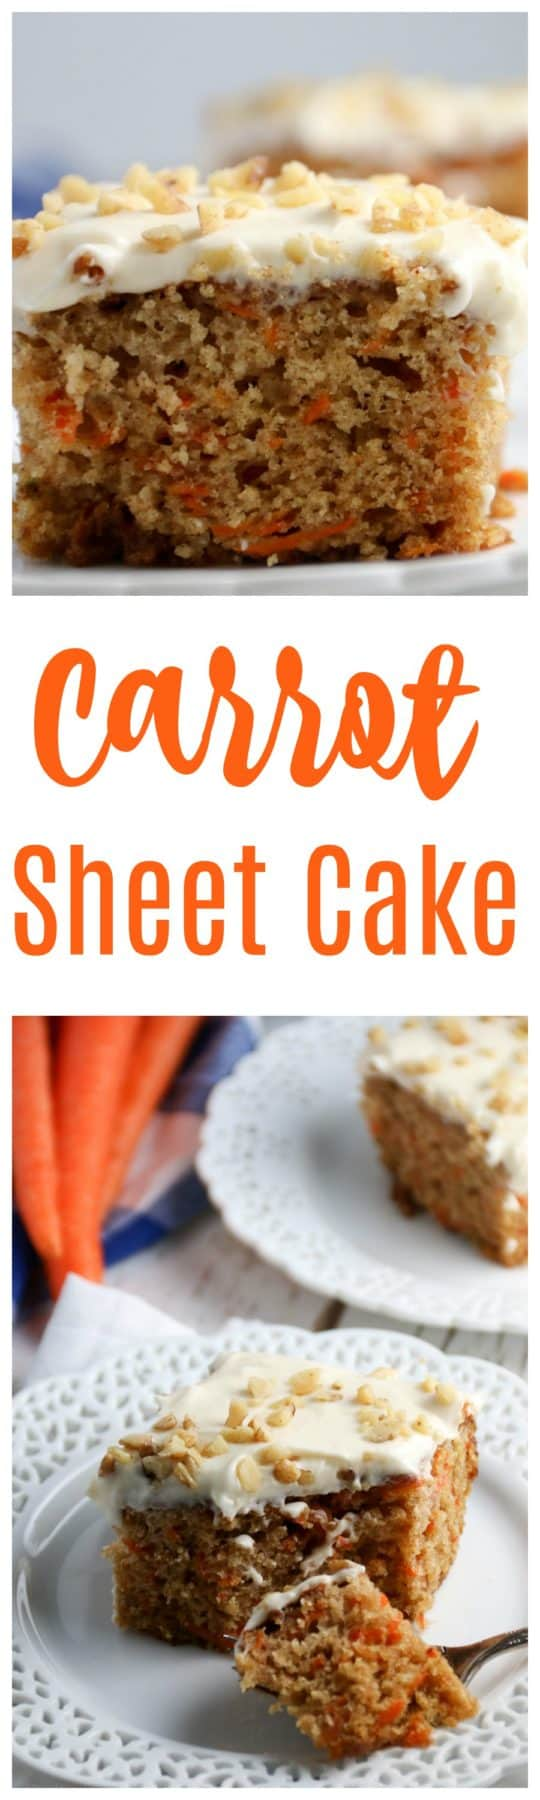 Carrot Cake Nutrition Facts